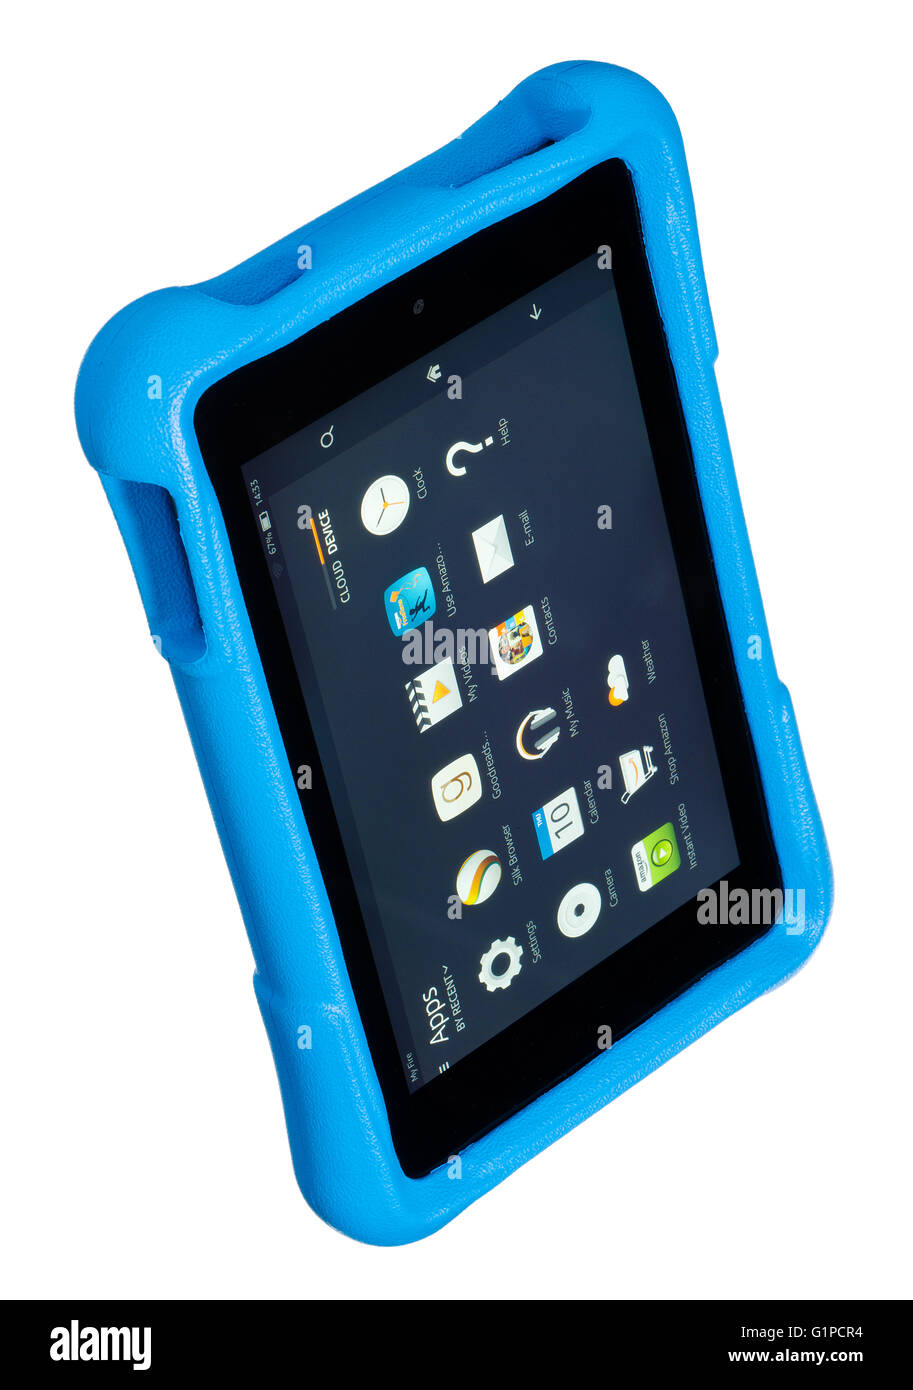 Kindle Fire for kids. Child orientated tablet computer with blue rubberised plastic cover for protection. - Stock Image